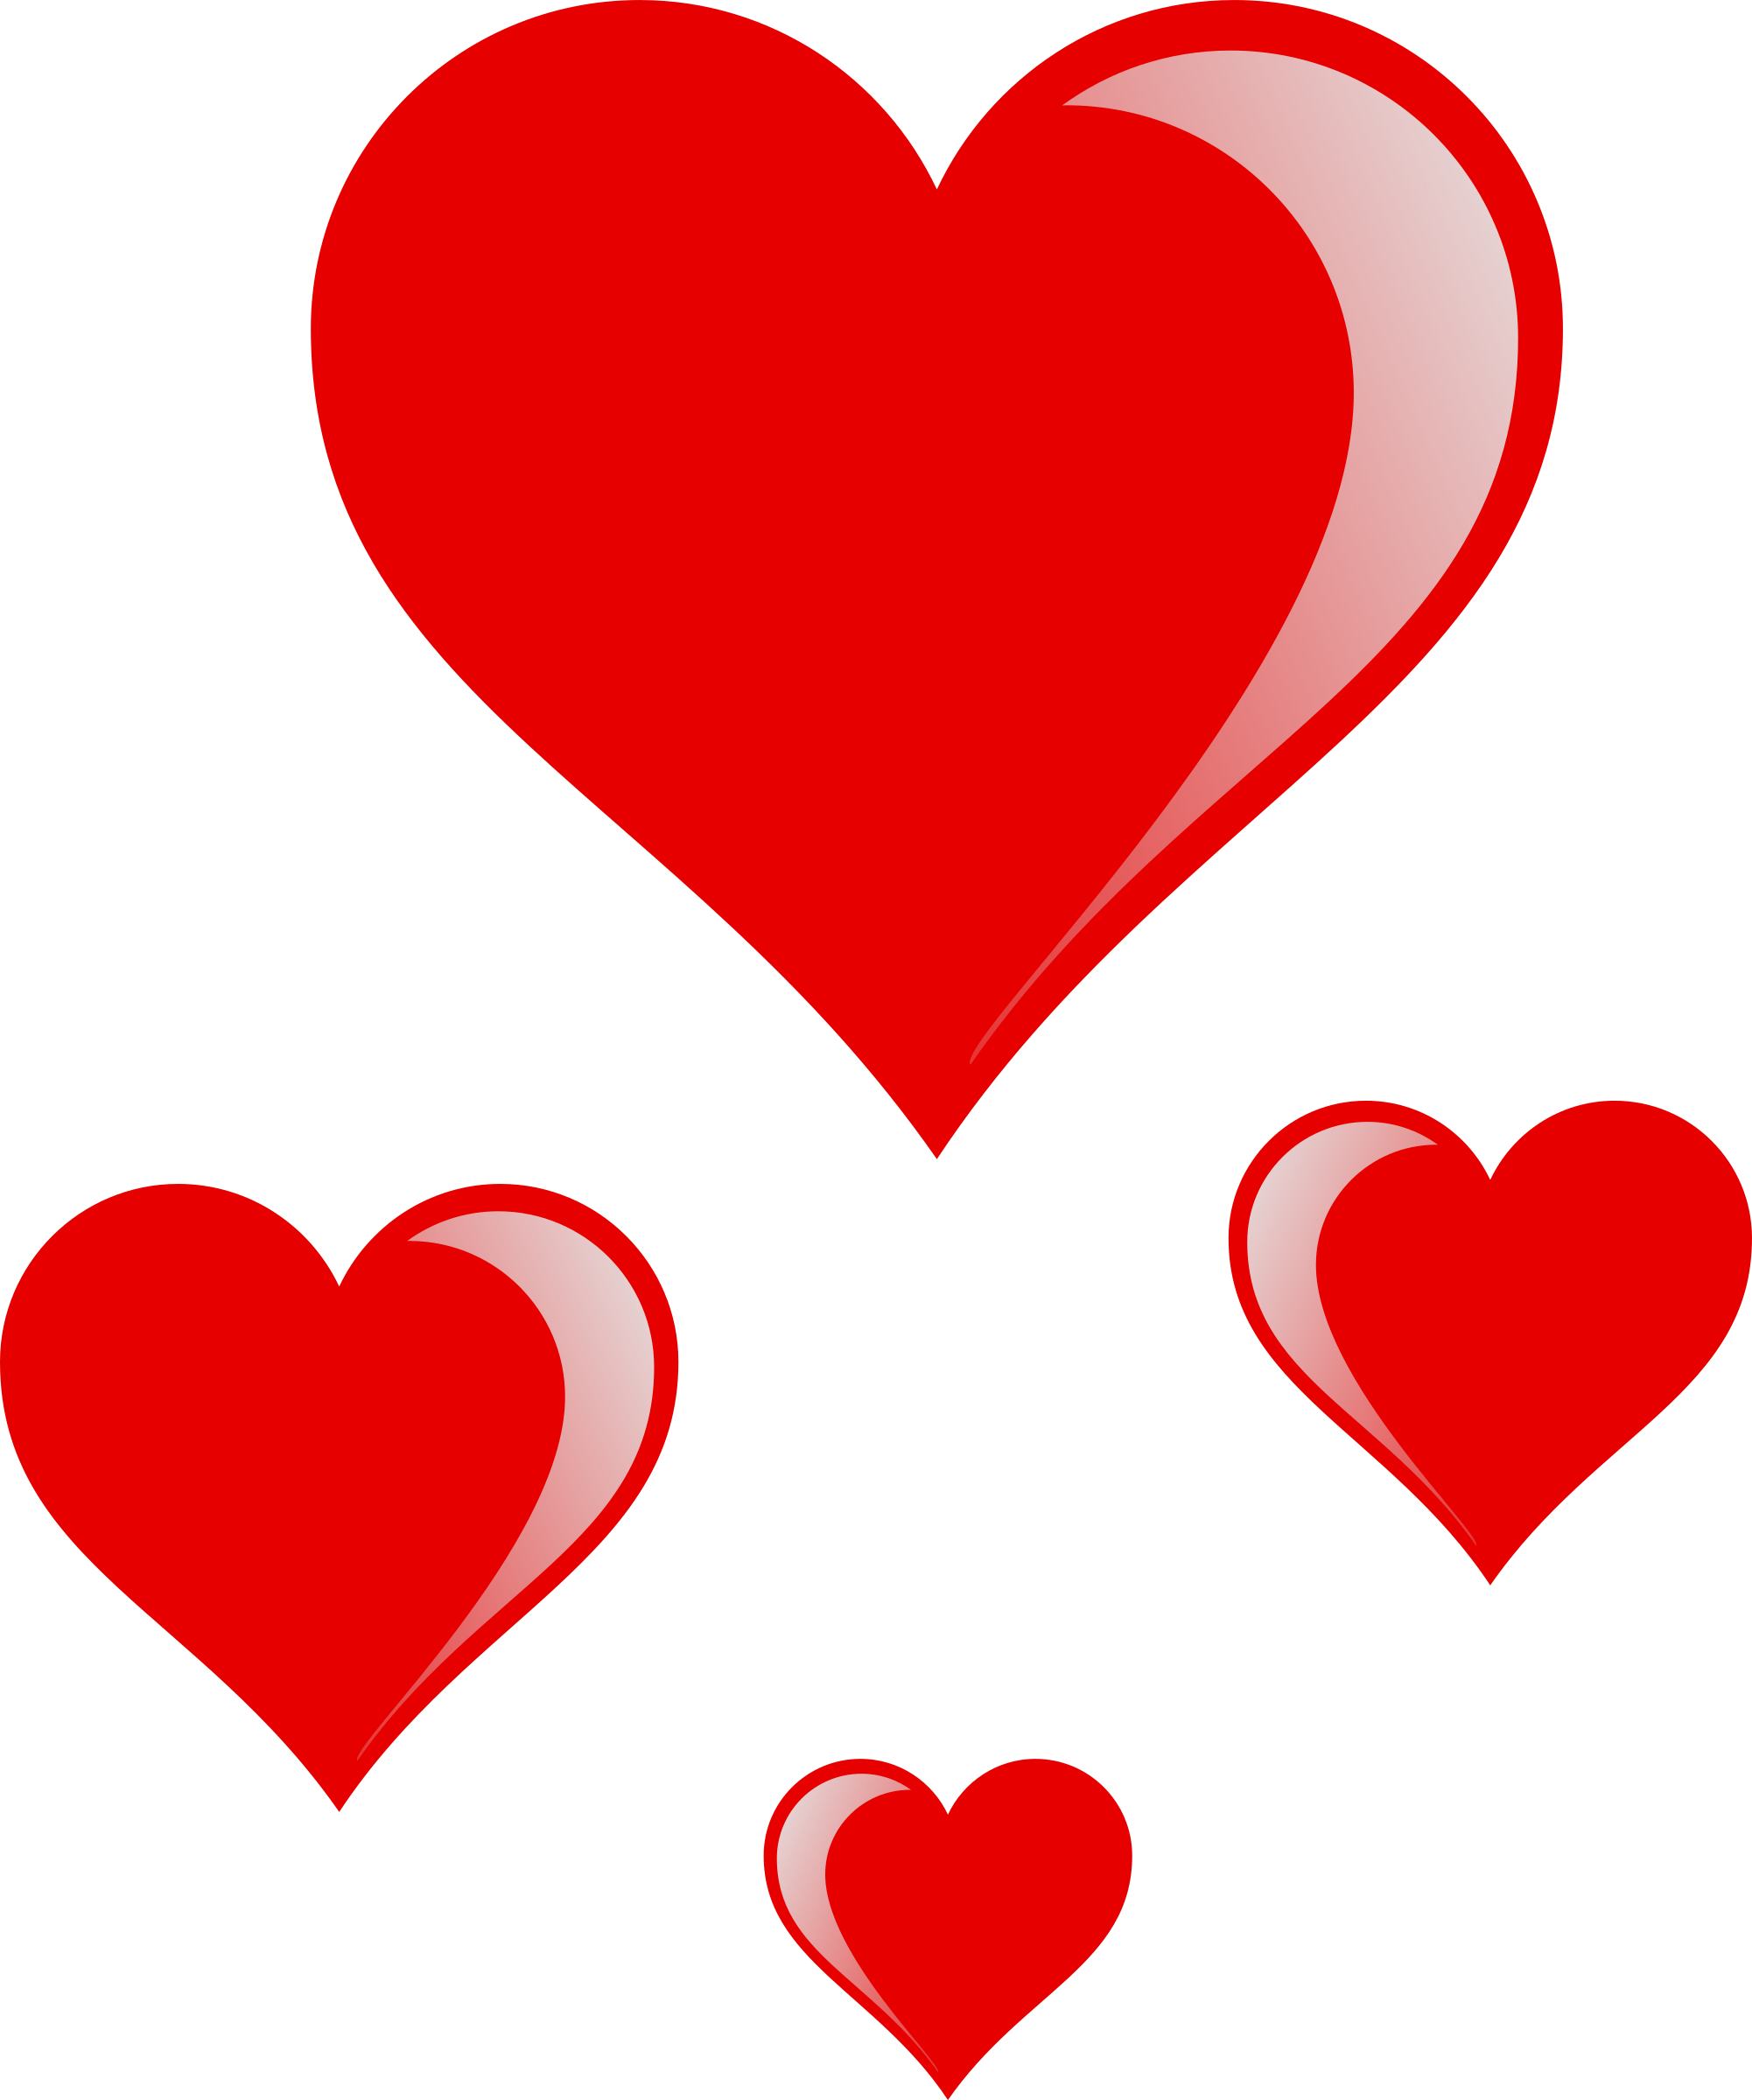 Heart valentines clipart graphic Clipart - heart cluster graphic